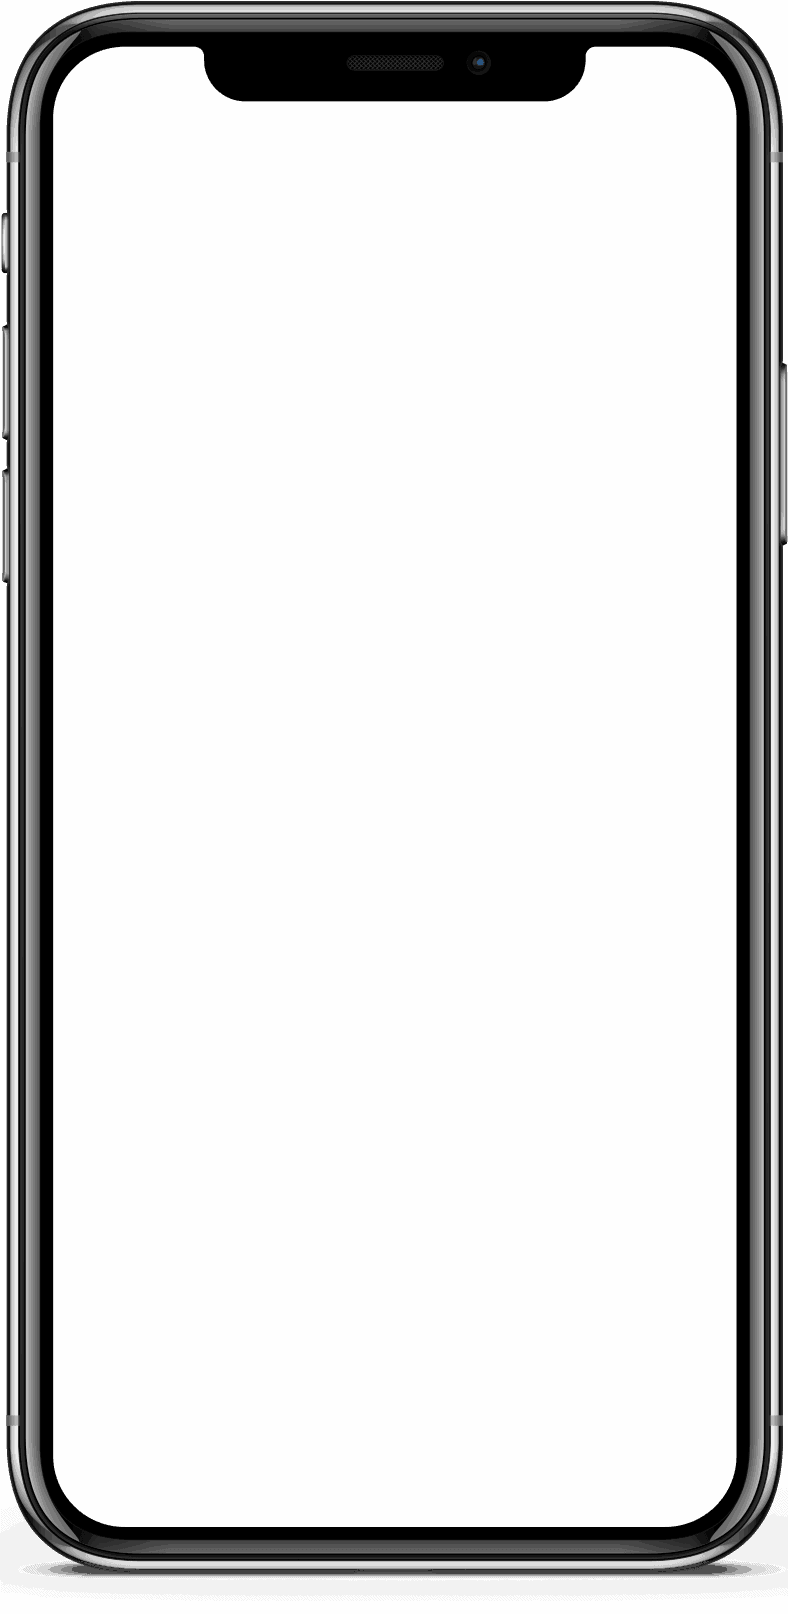 iphonextransparent